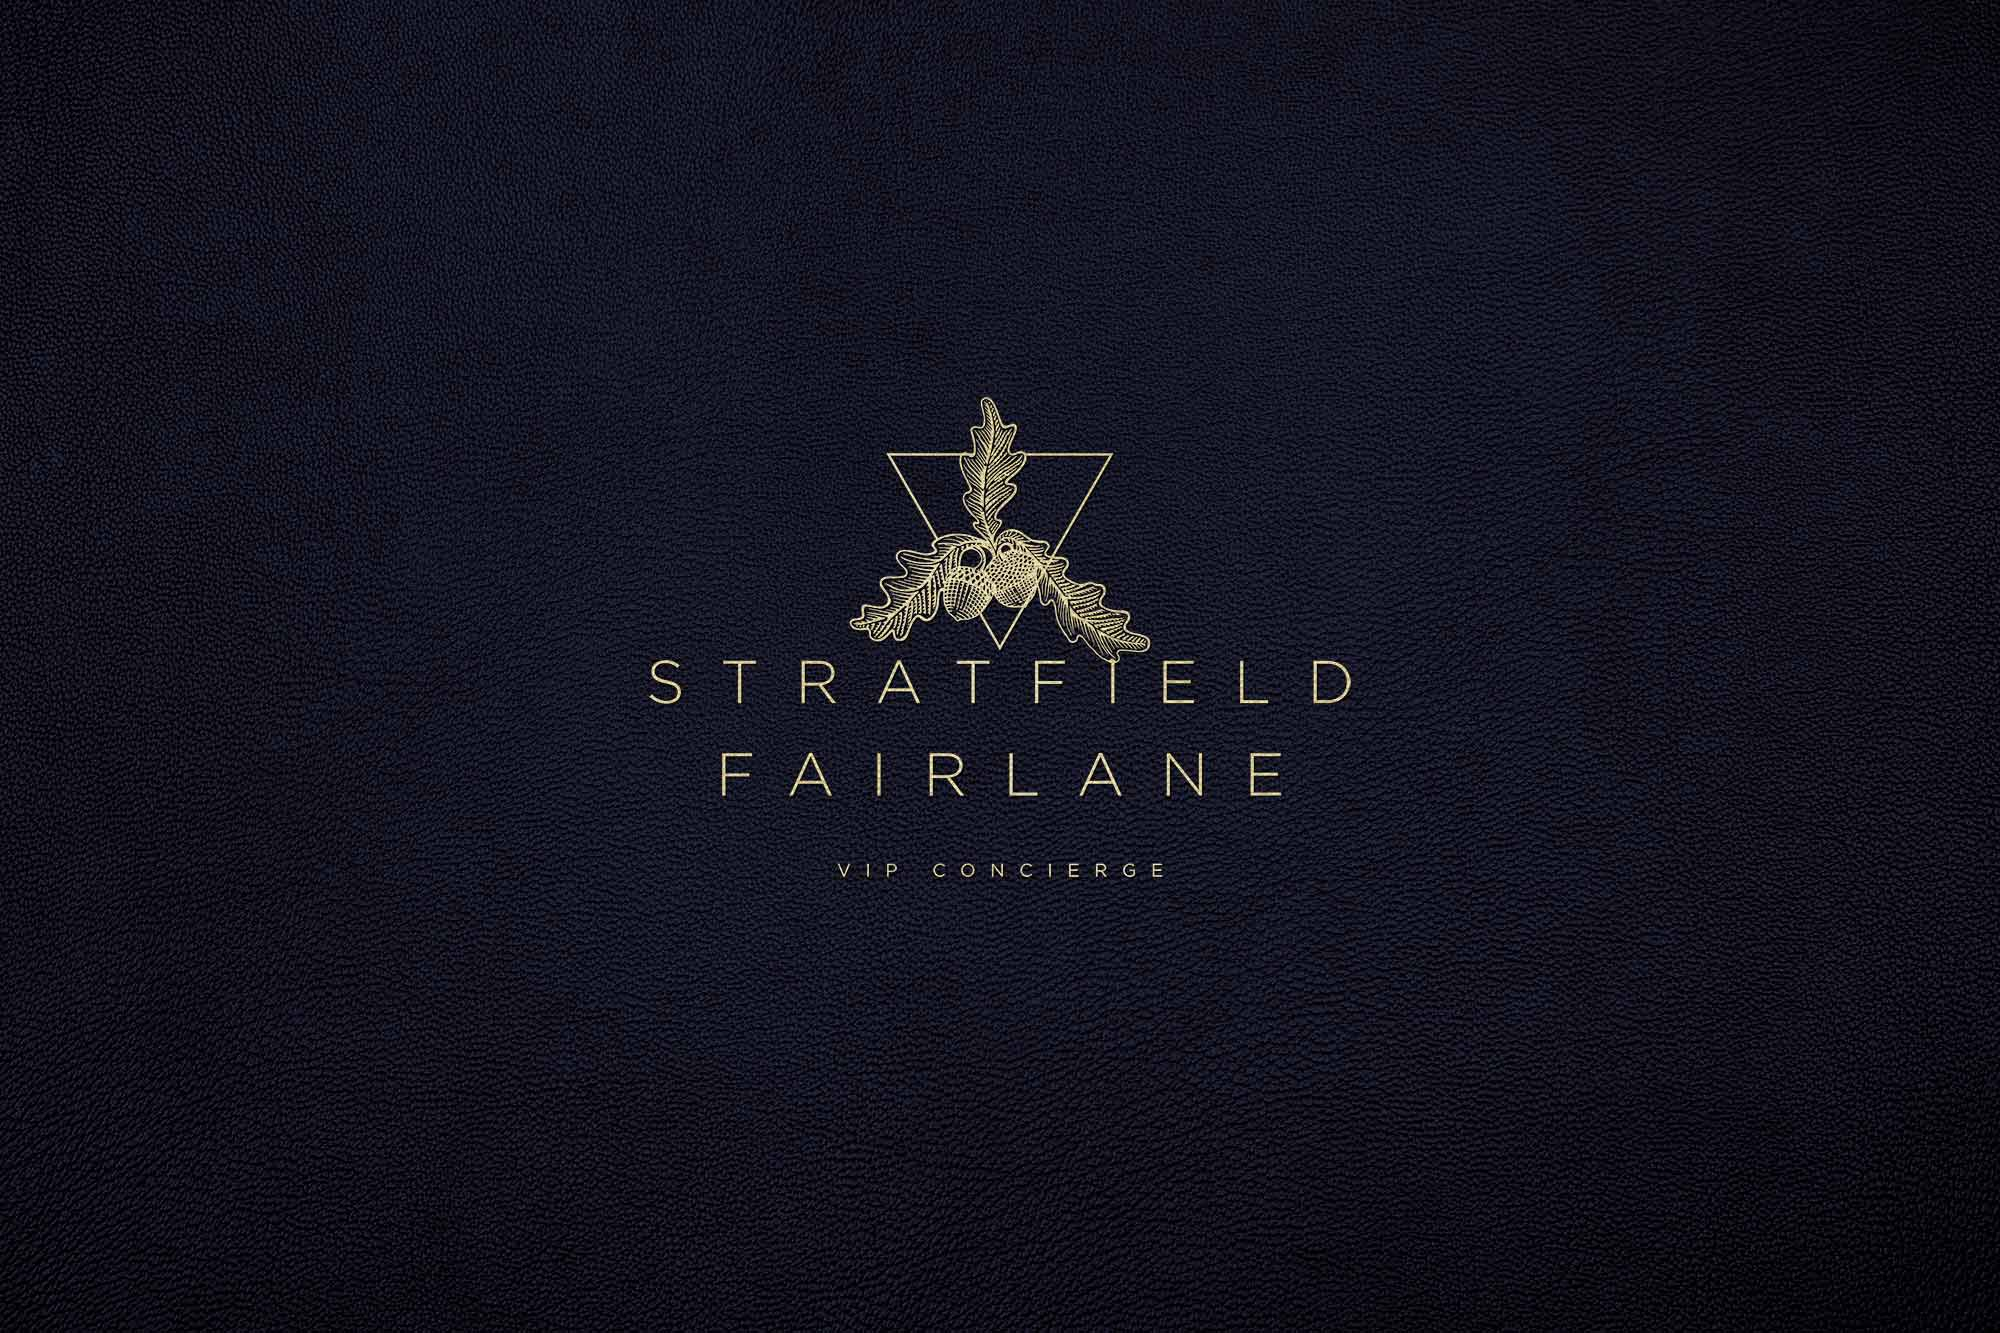 Stratfield Fairlane